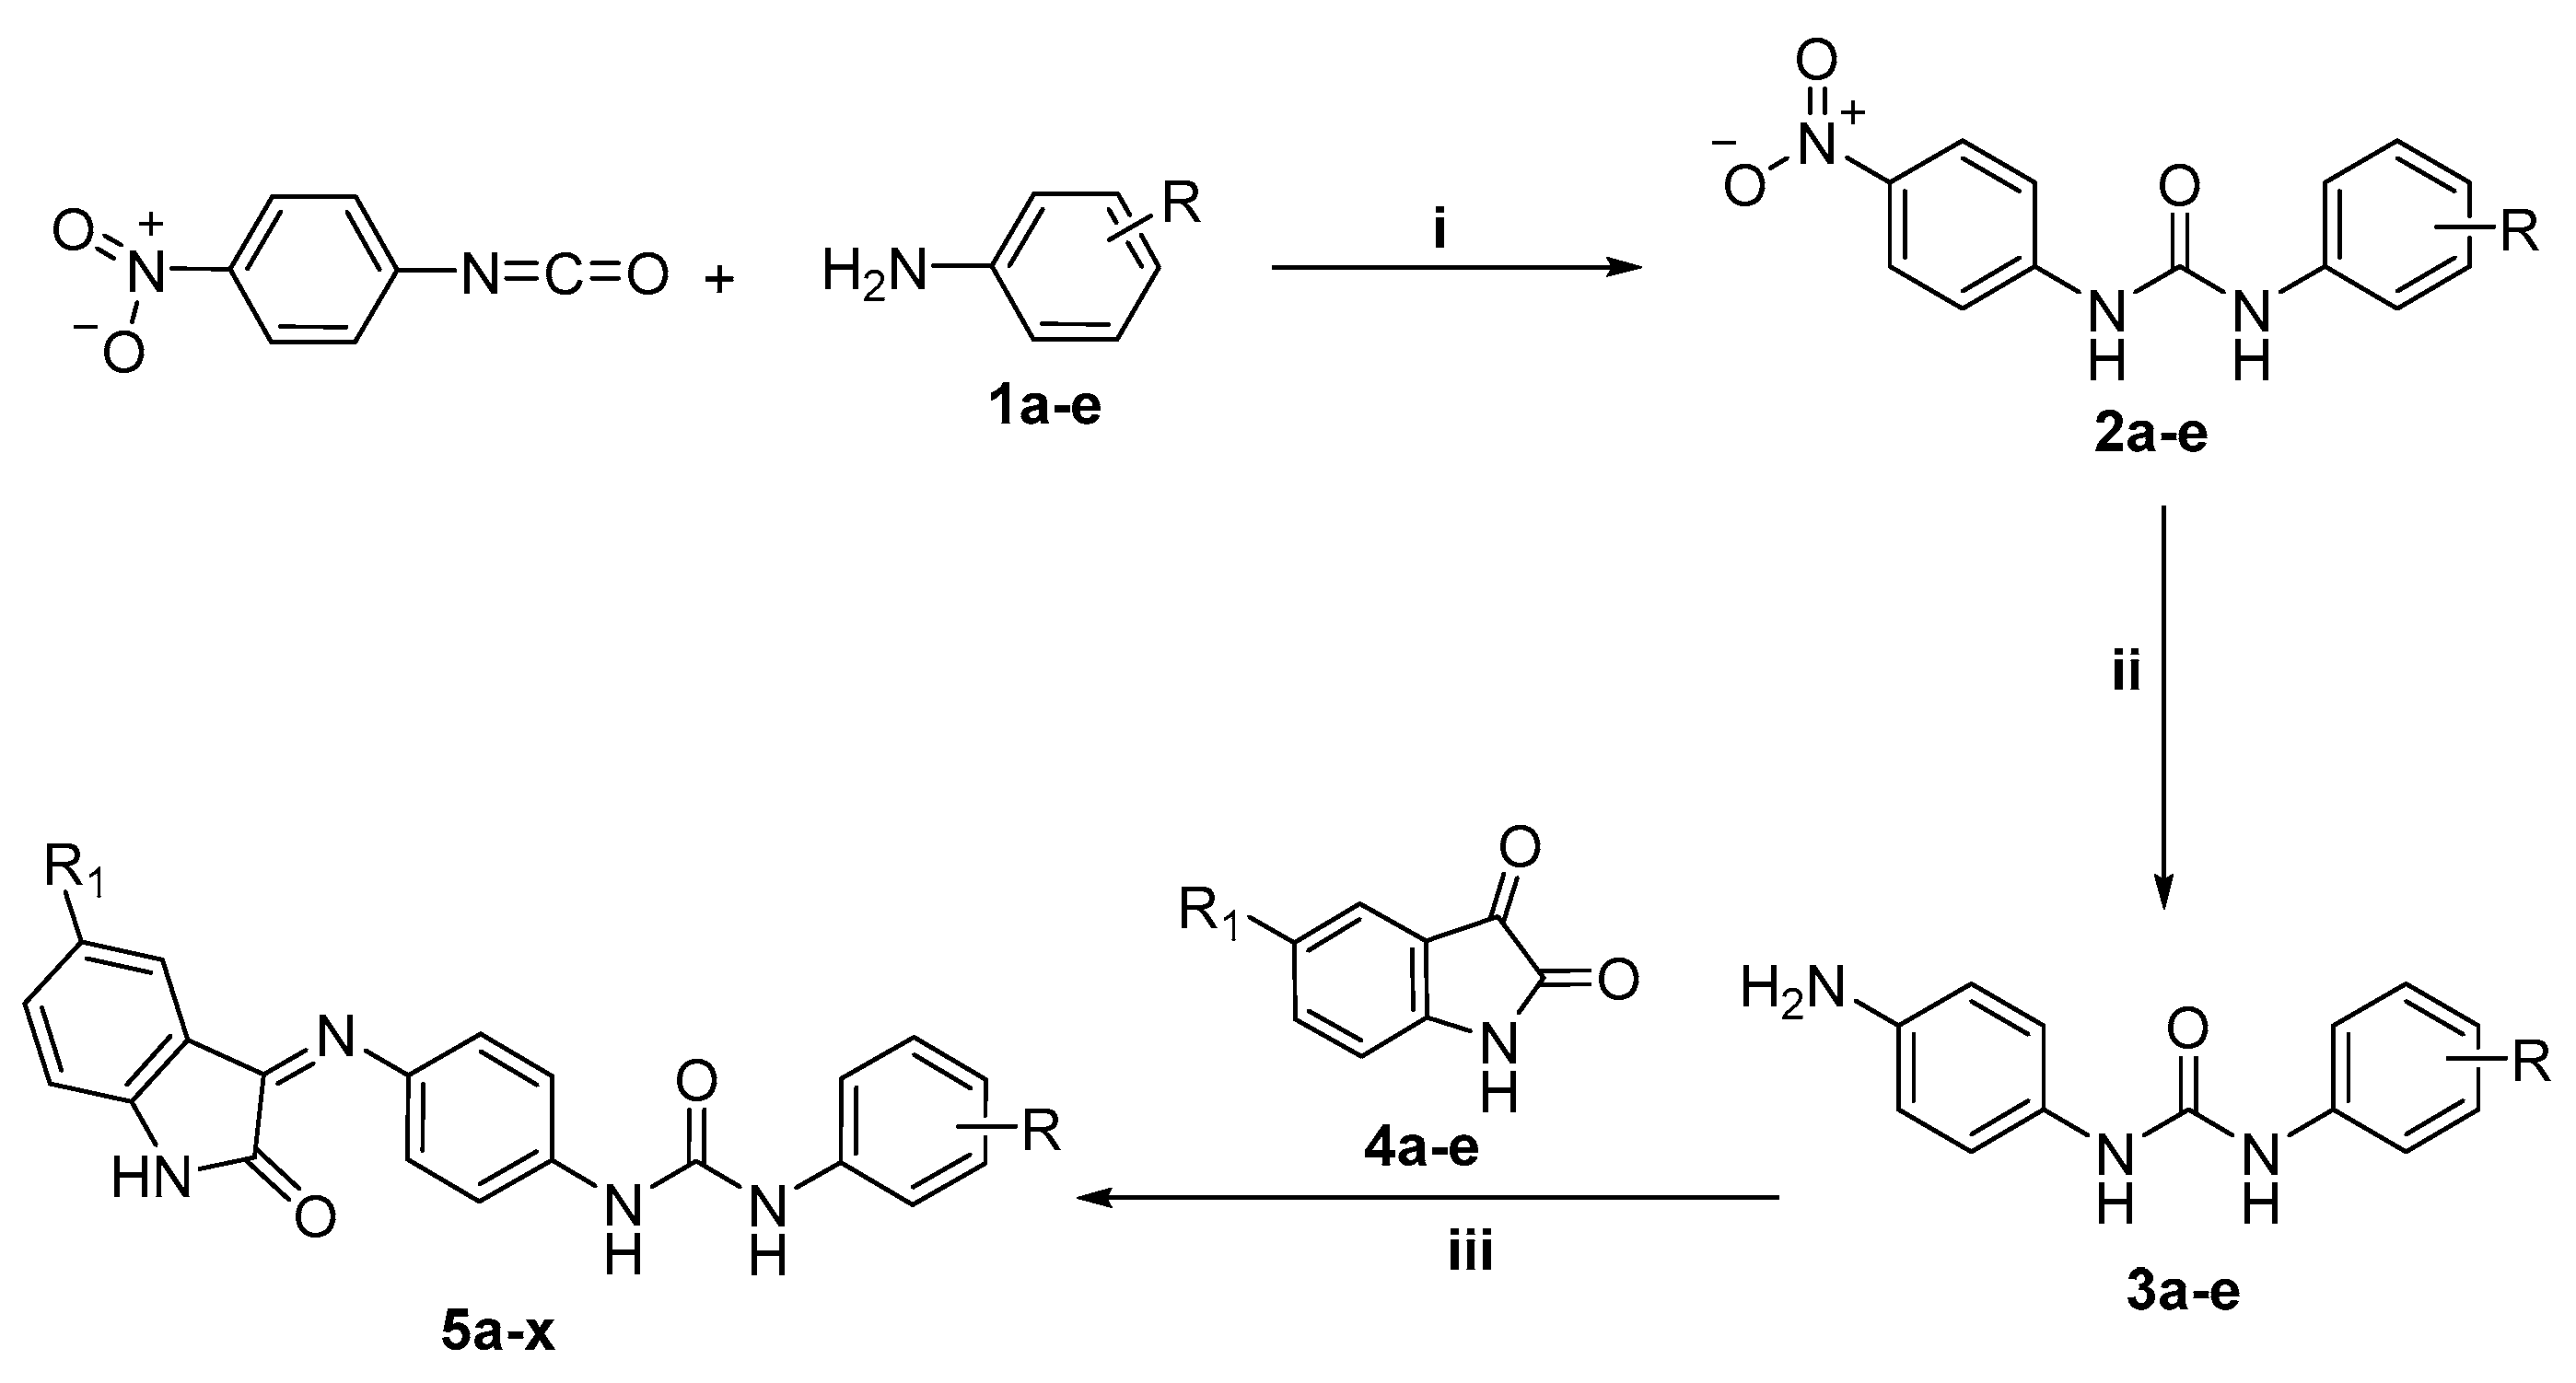 Molecules 21 00762 sch001